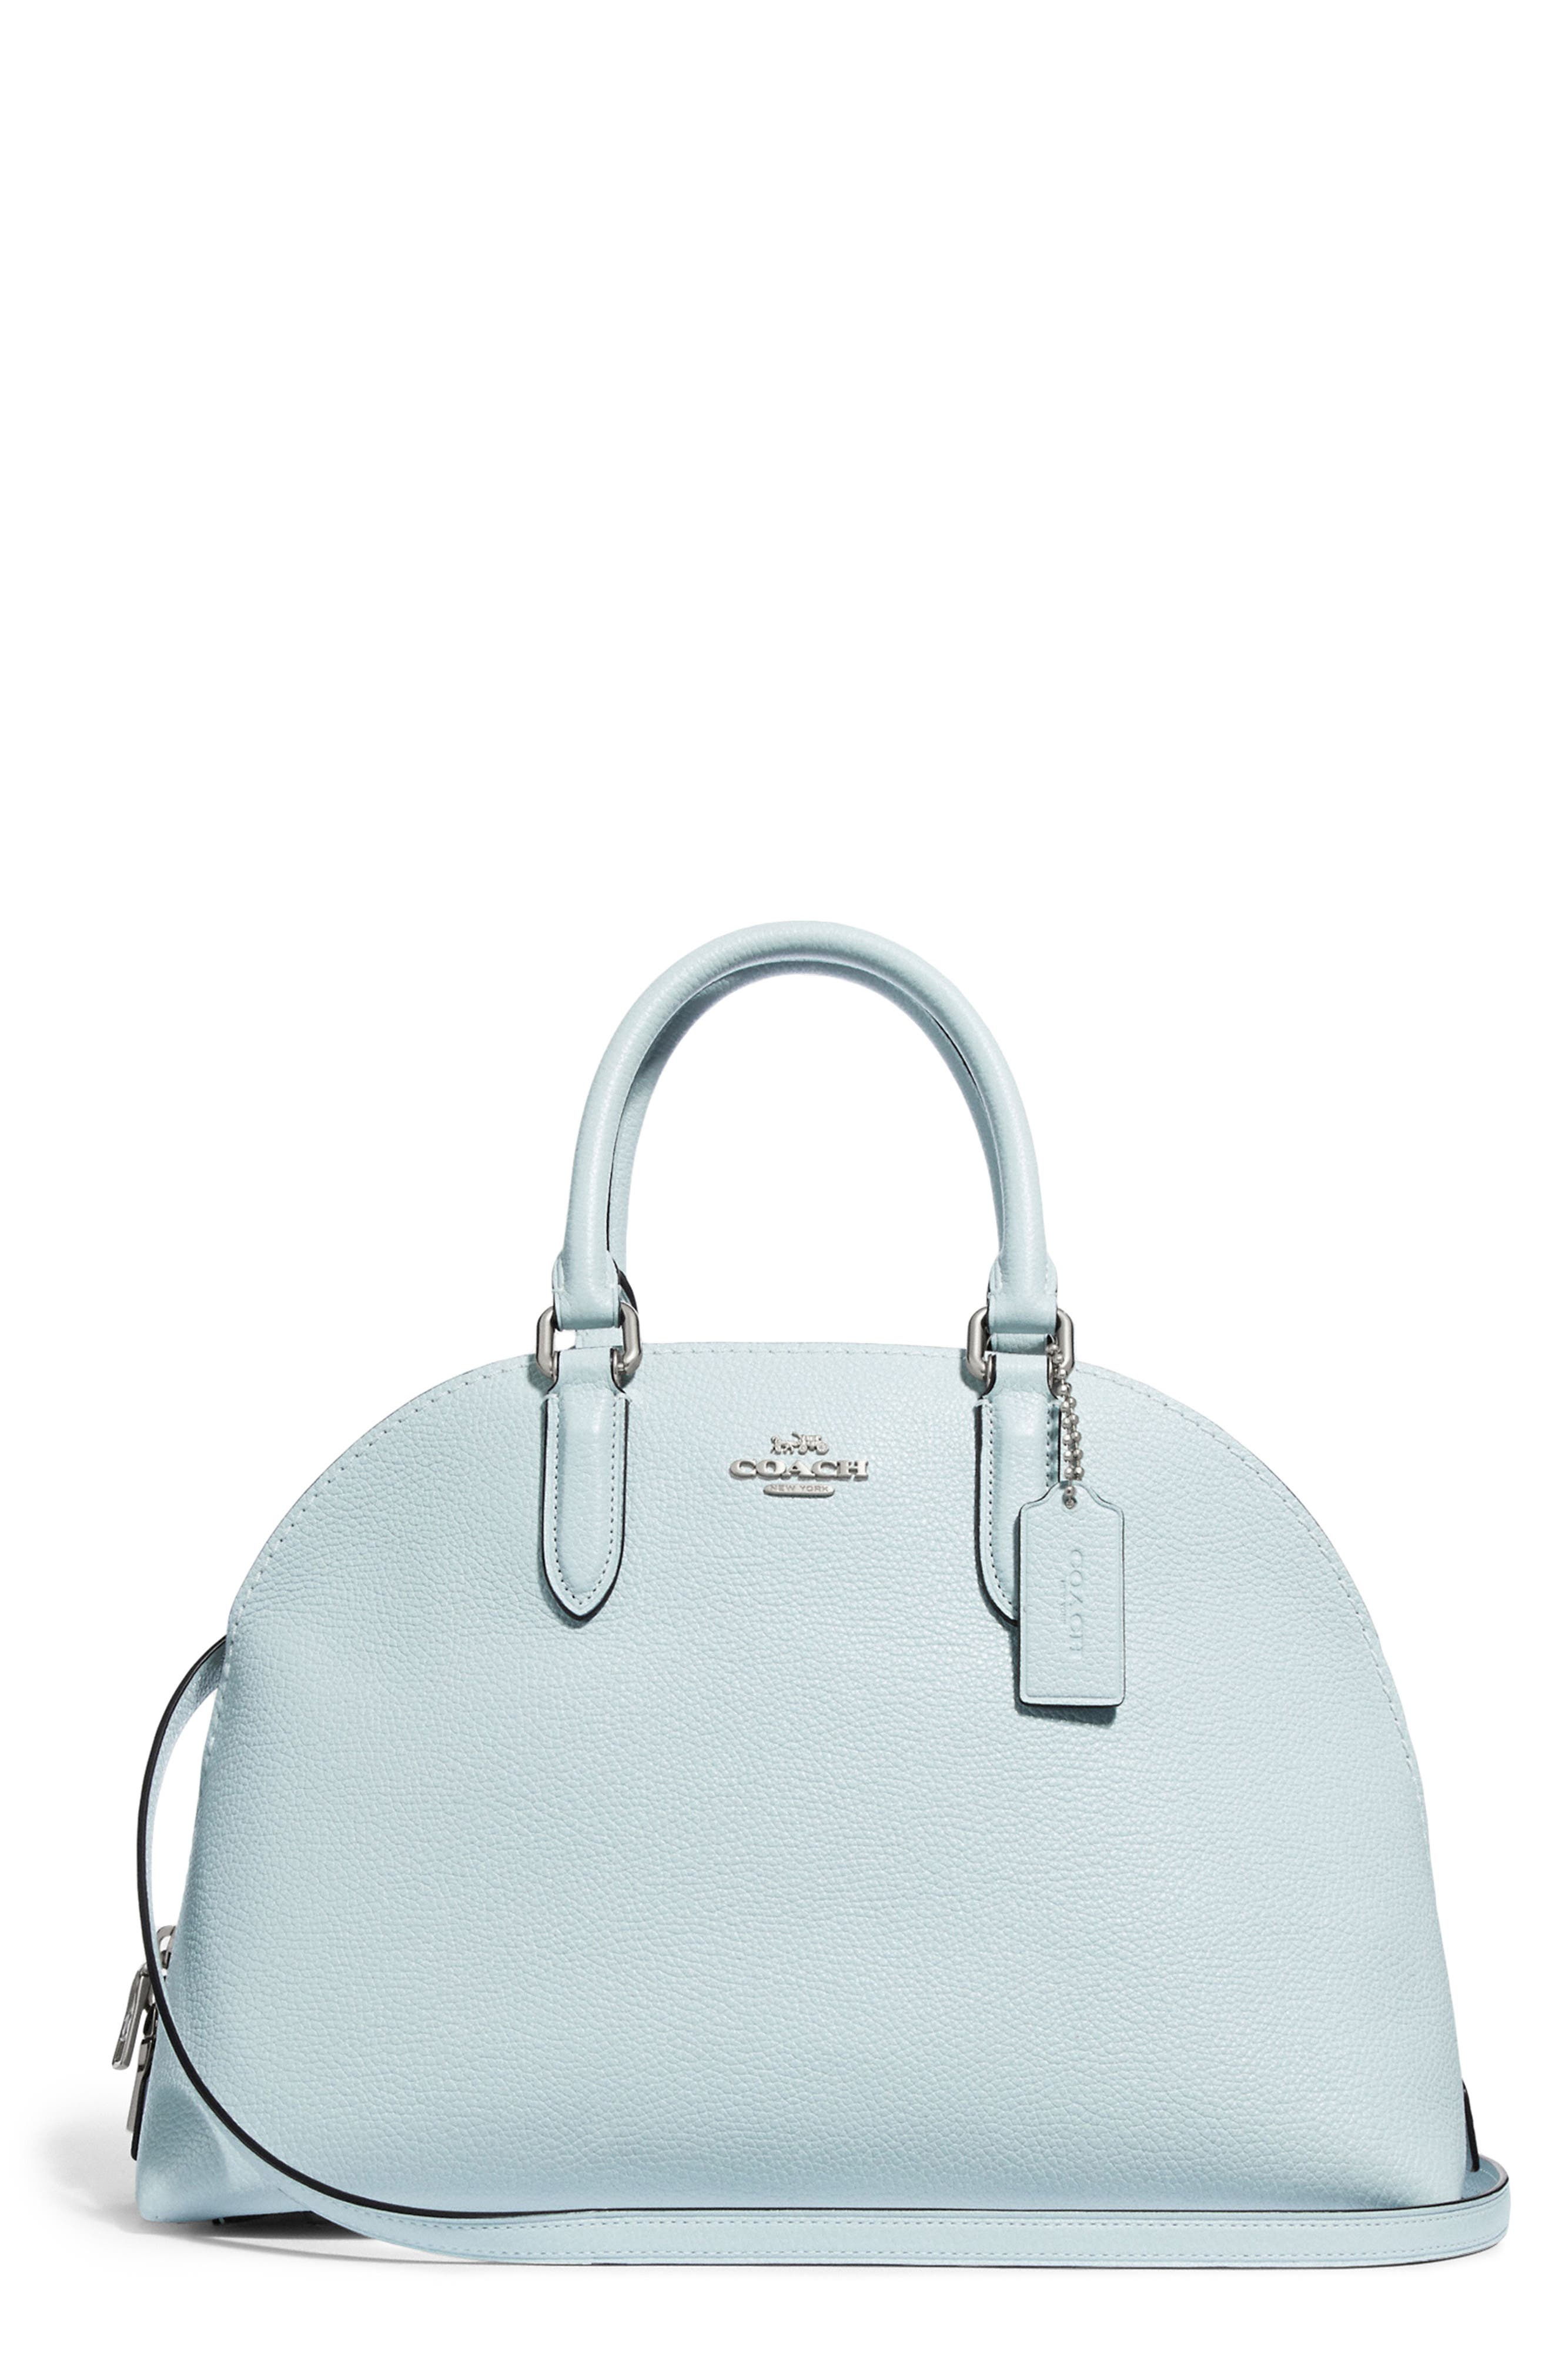 Quinn Leather Dome Satchel,                             Main thumbnail 1, color,                             SKY